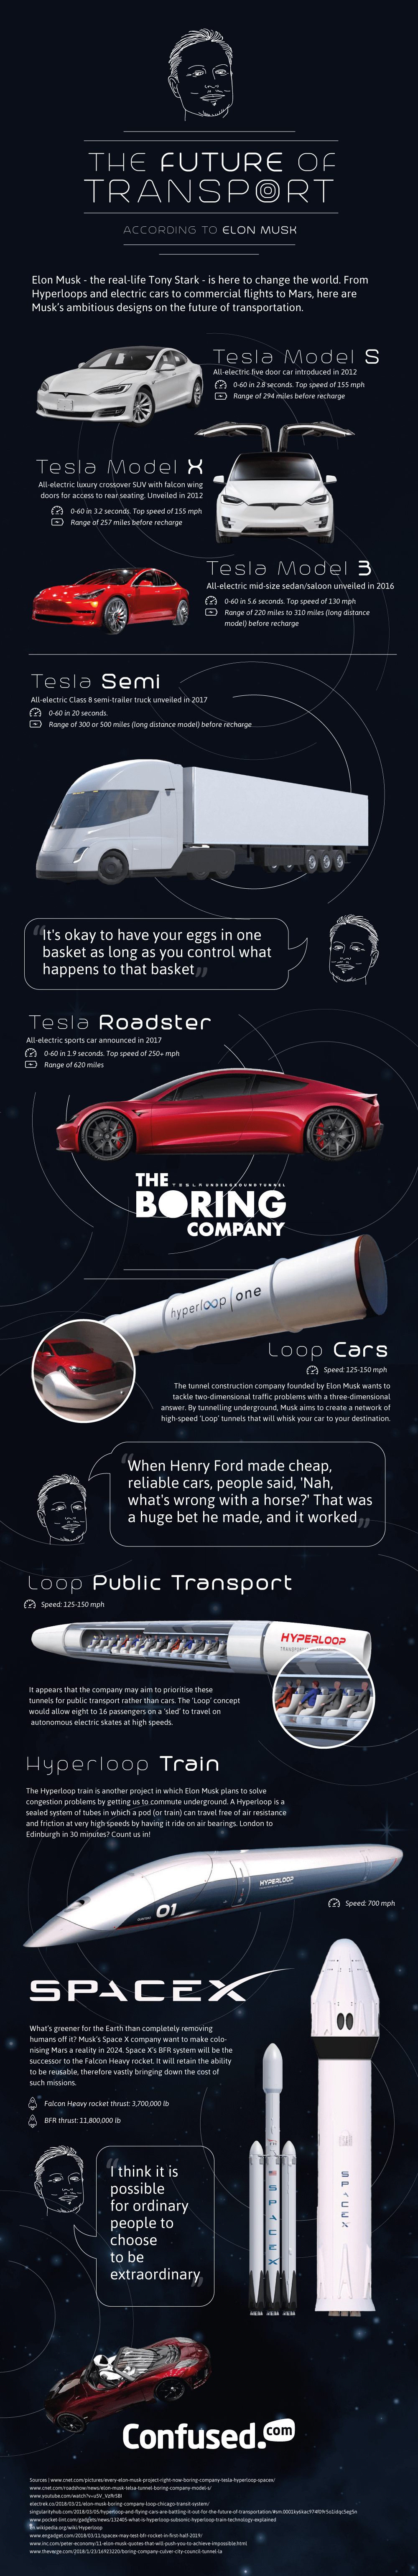 The Future of Transport According to Elon Musk